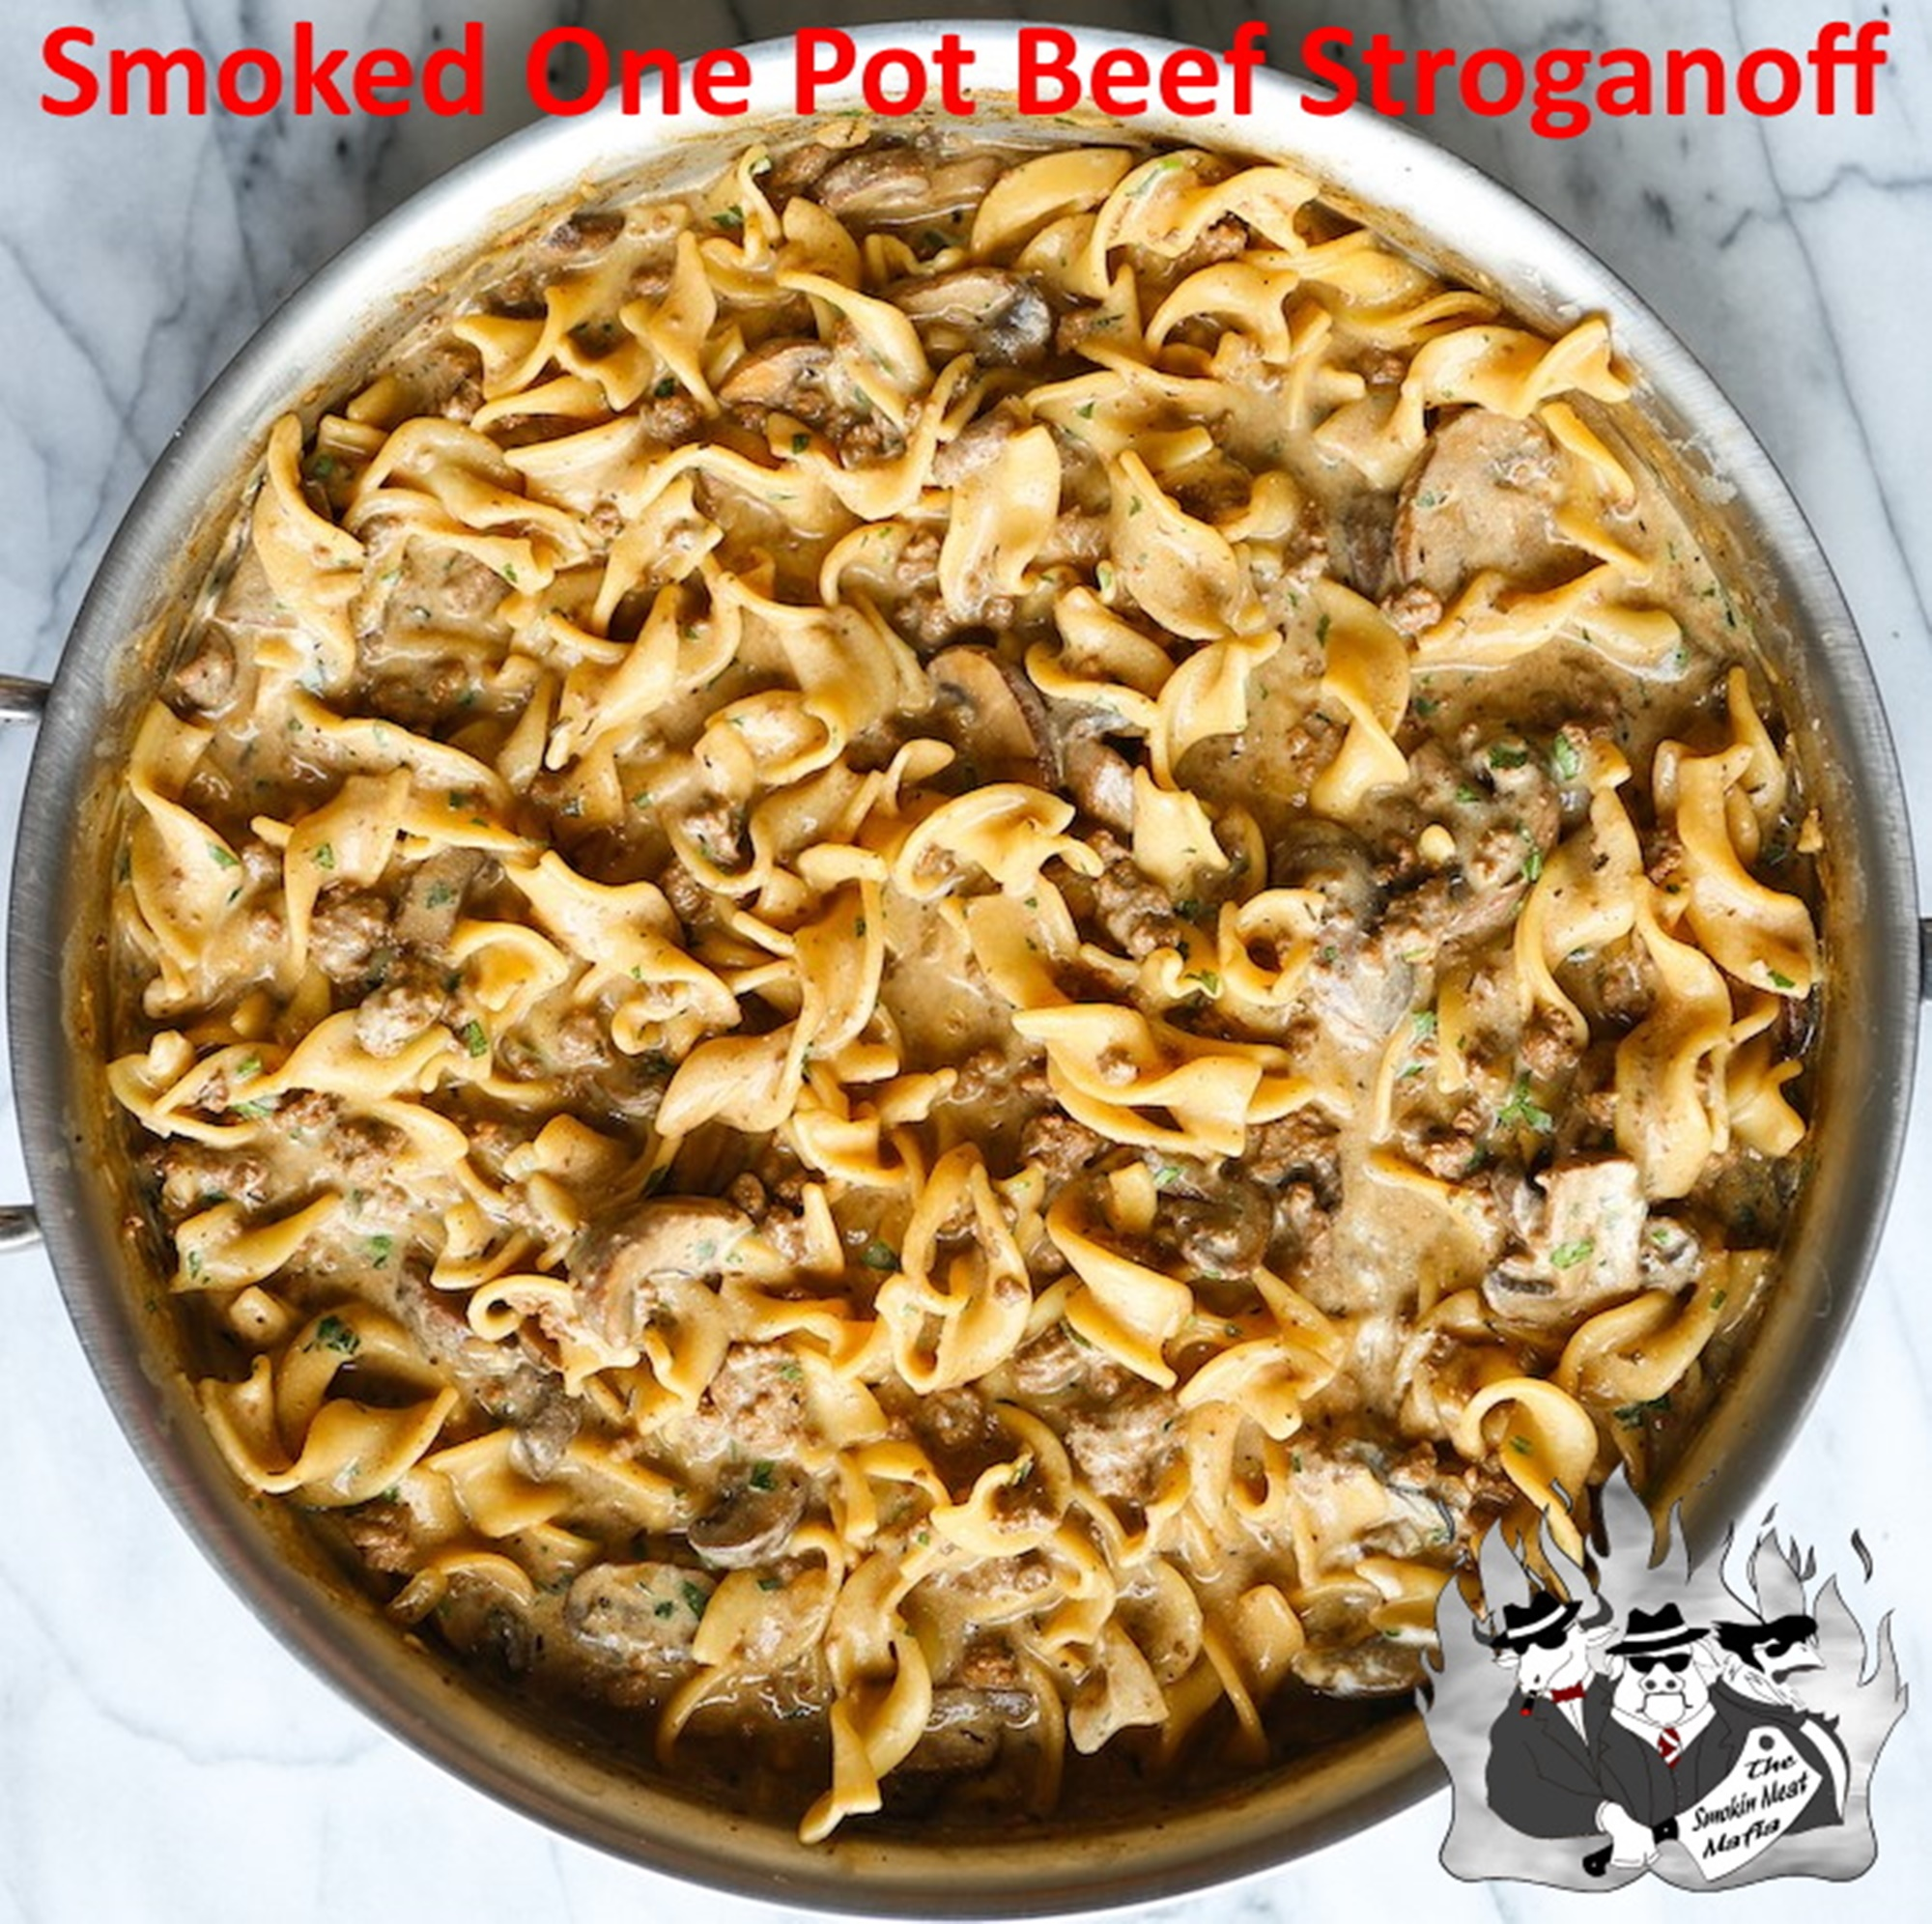 Smoked One Pot Beef Stroganoff